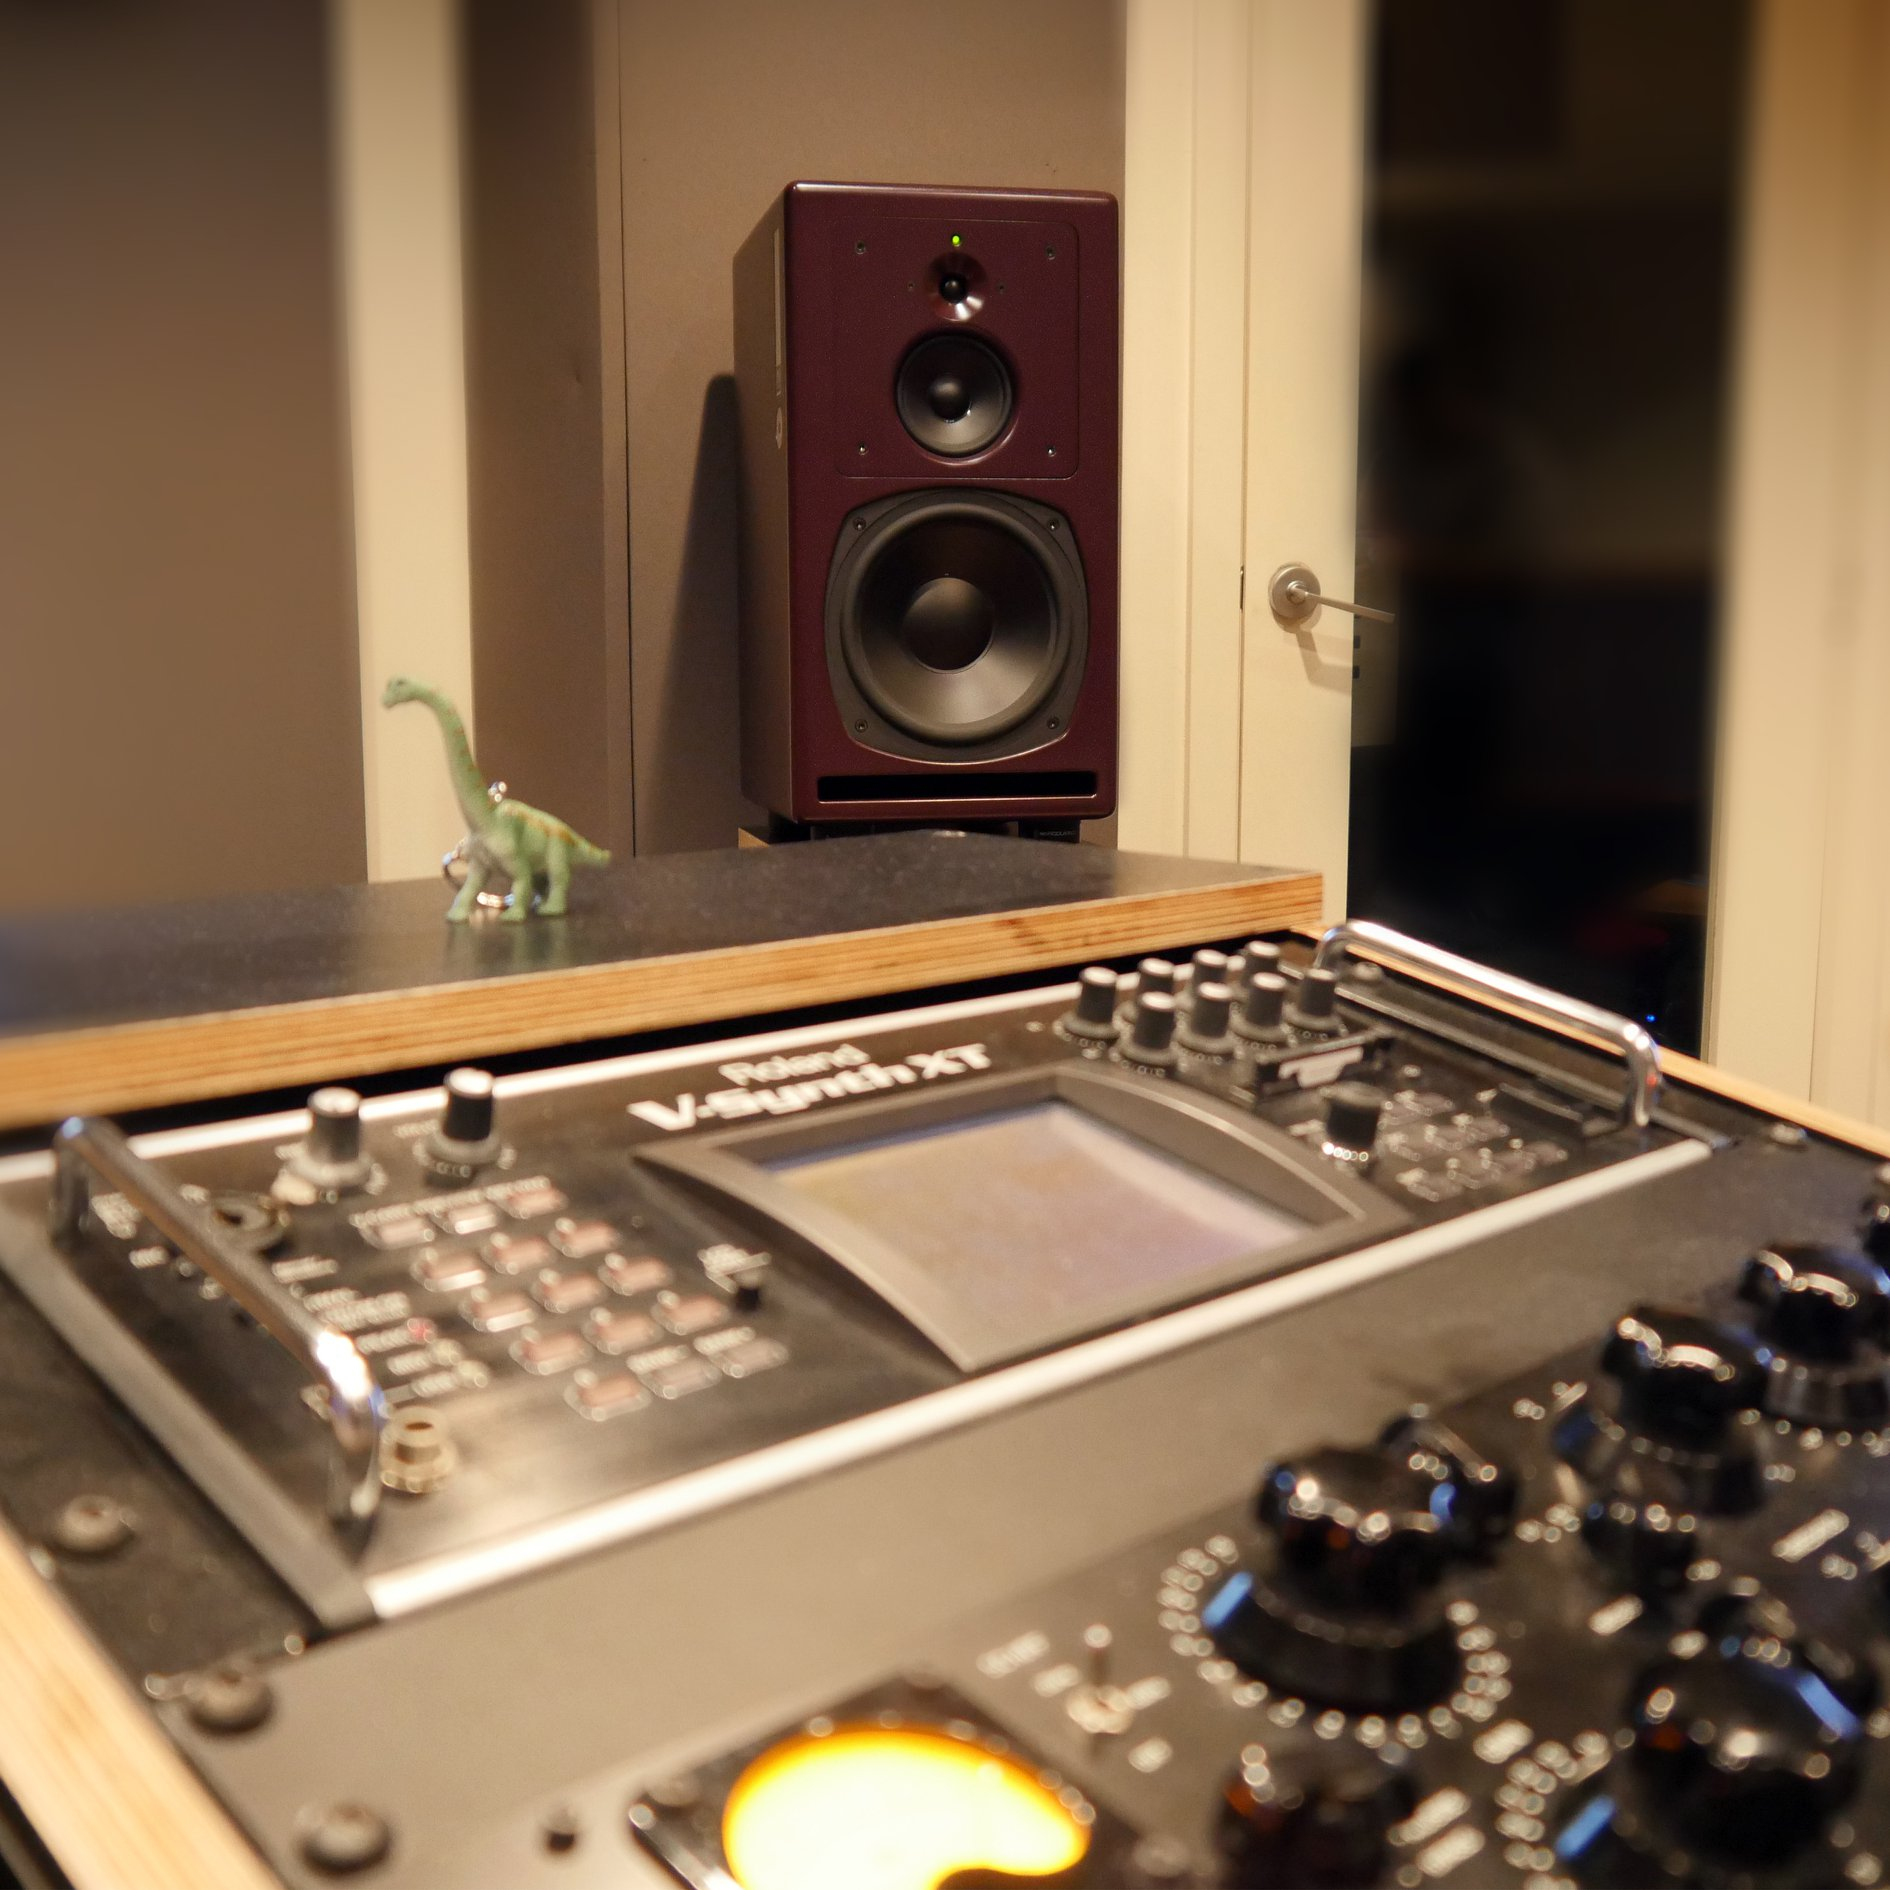 Increase Audio Mastering Studio uses PSI Audio A25-M 3-way active studio monitors